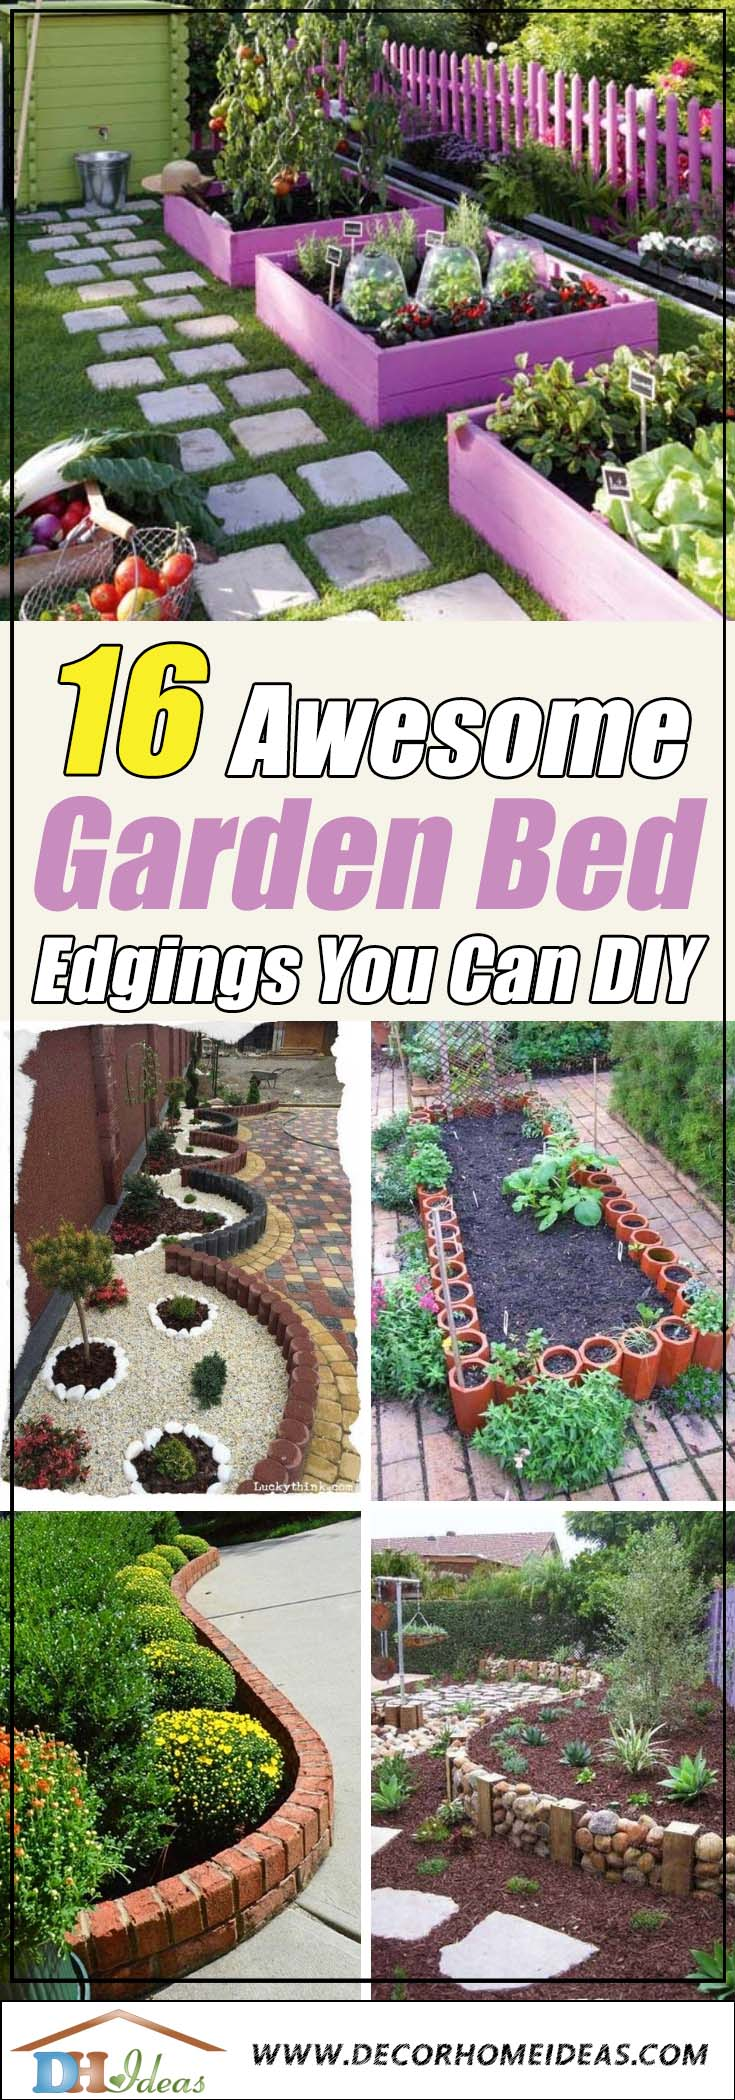 DIY Garden Bed Edgings #garden #gardenbed #edging #decorhomeideas